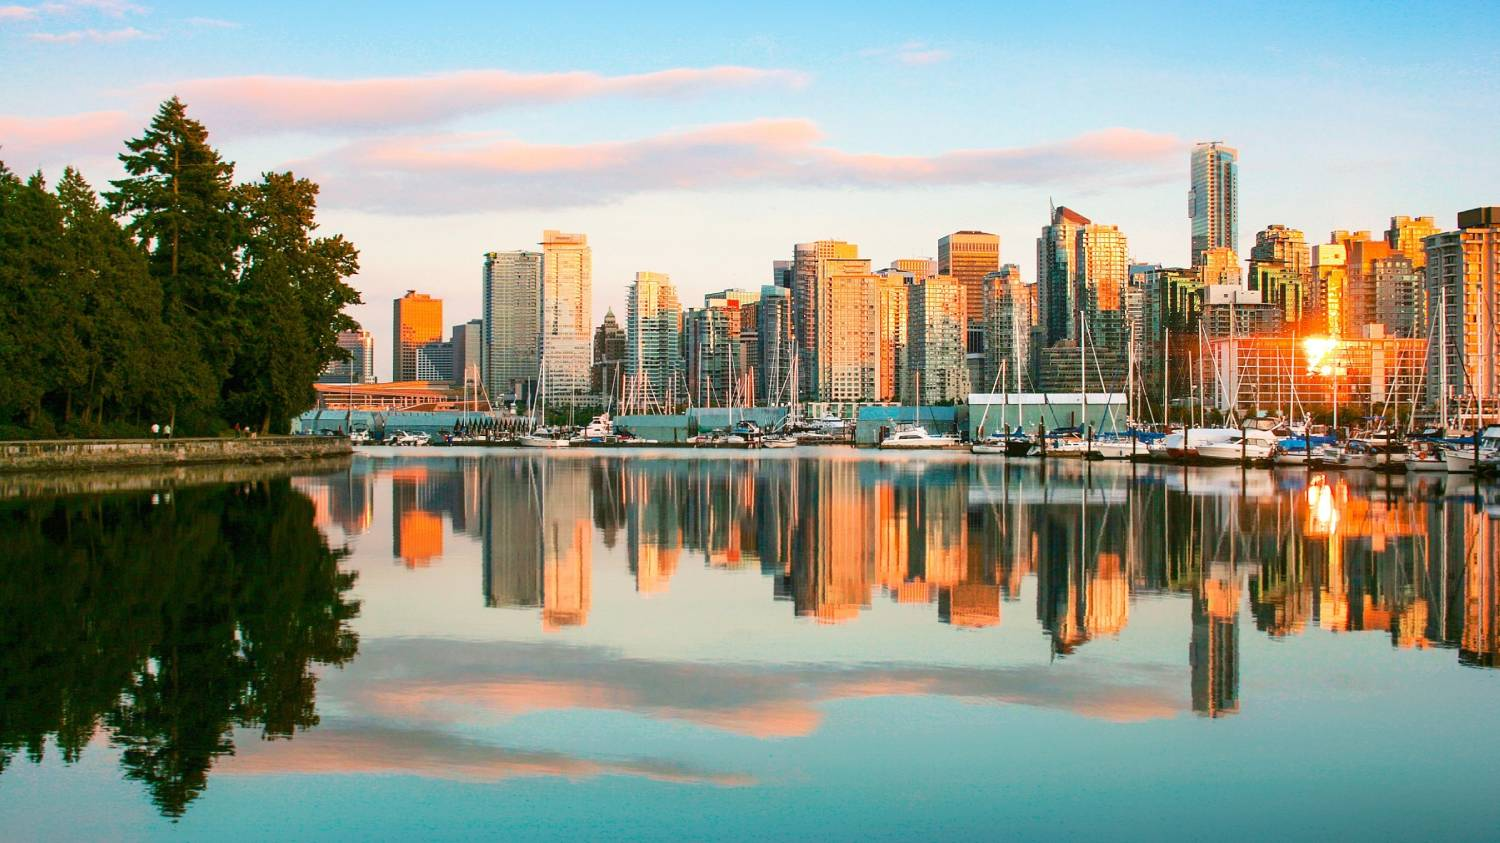 Vancouver - The Best Places To Visit In Canada